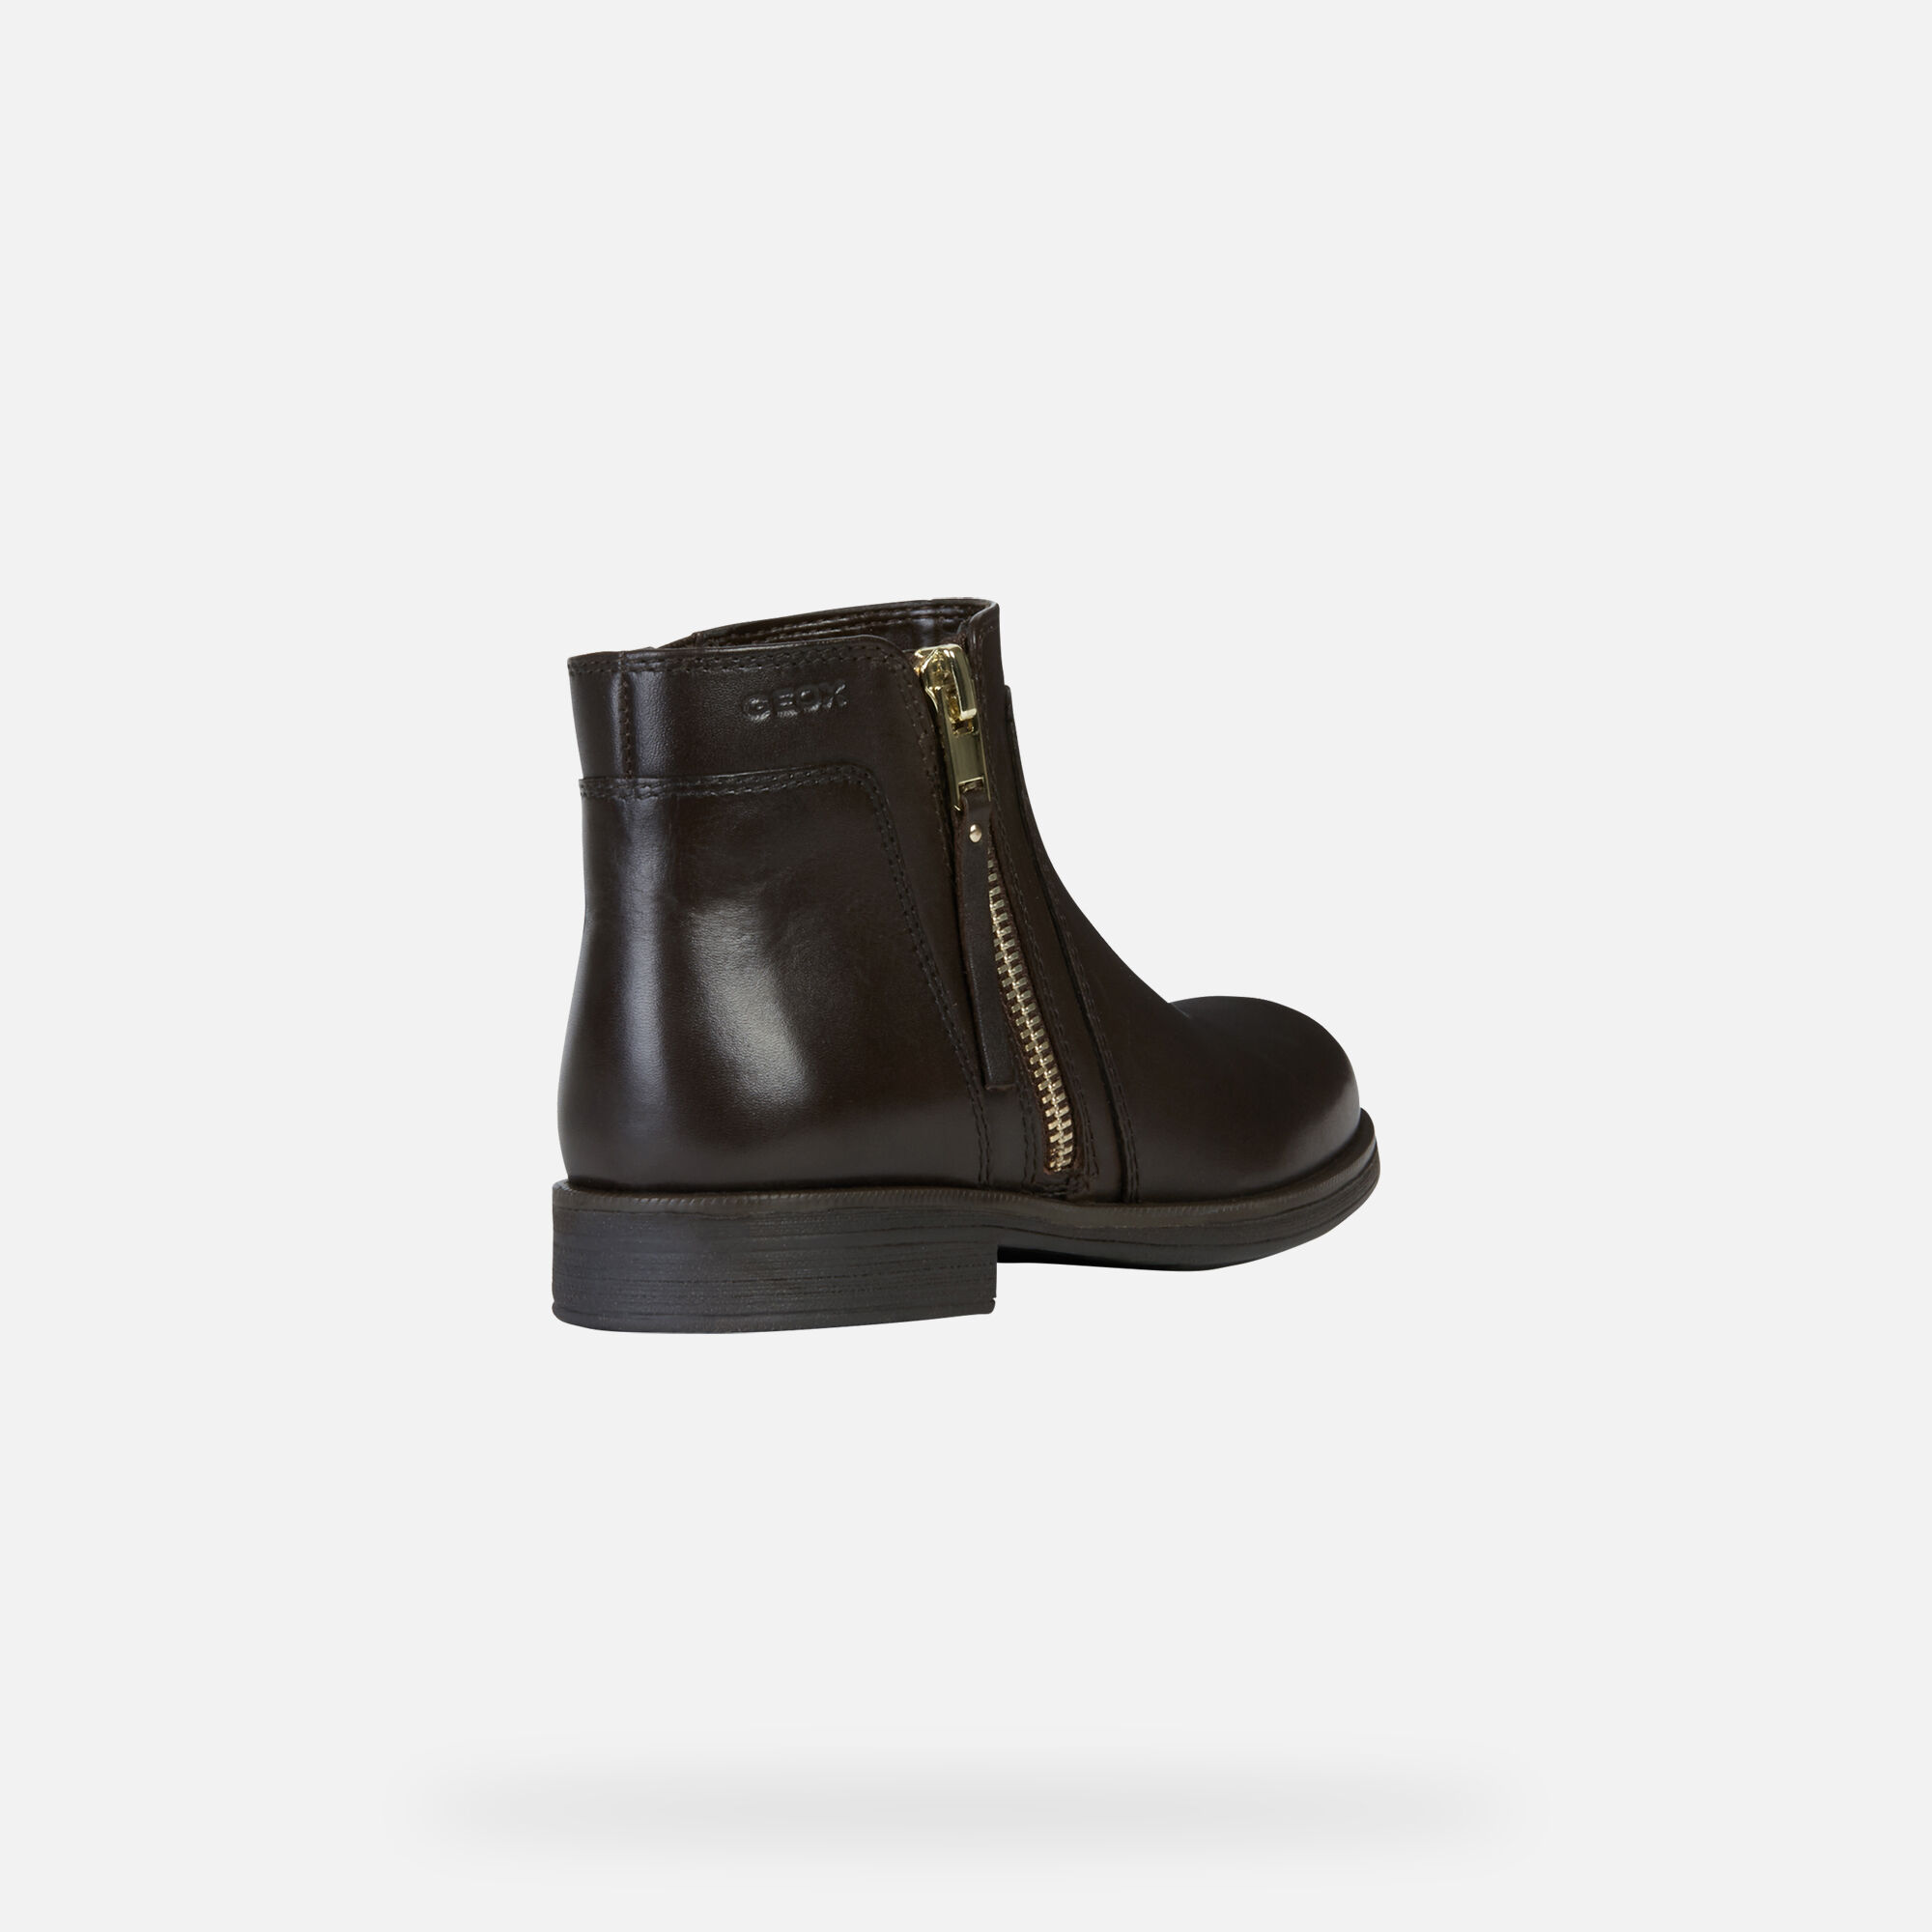 Geox Agata Brown ankle boot was £75 now £45